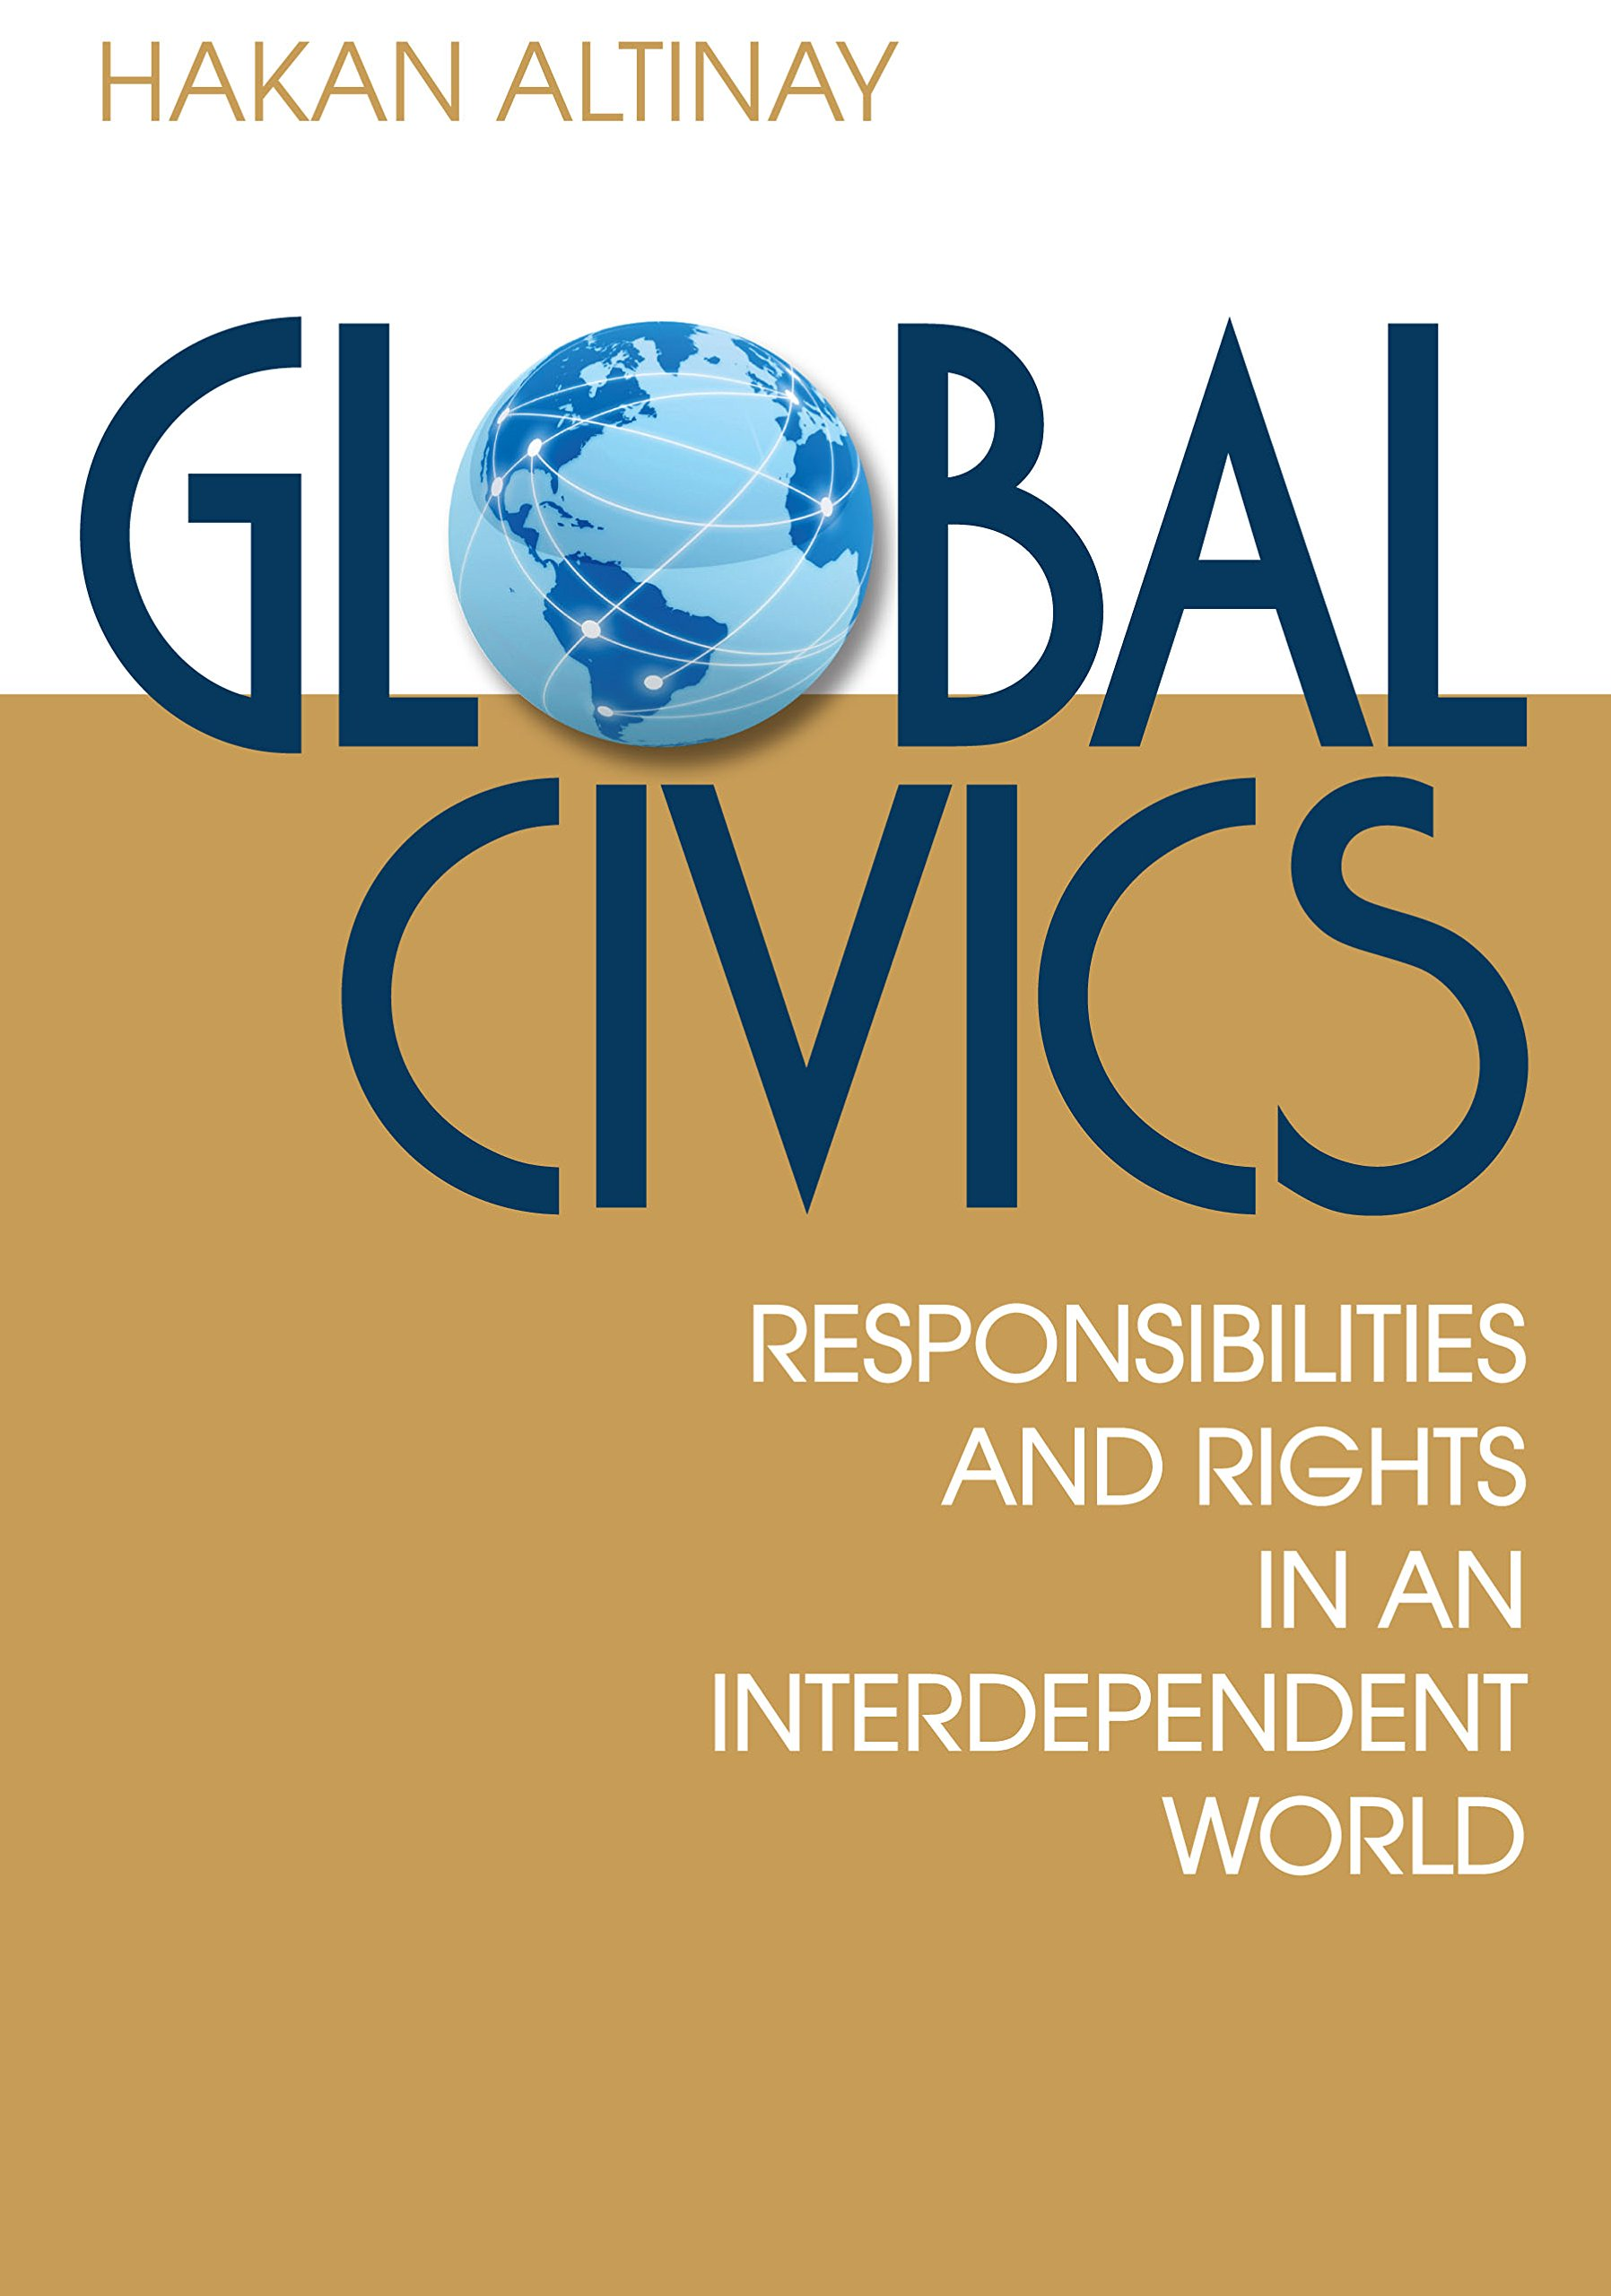 Global Civics Responsibilities And Rights In An Interdependent World Paperback January 18 2011